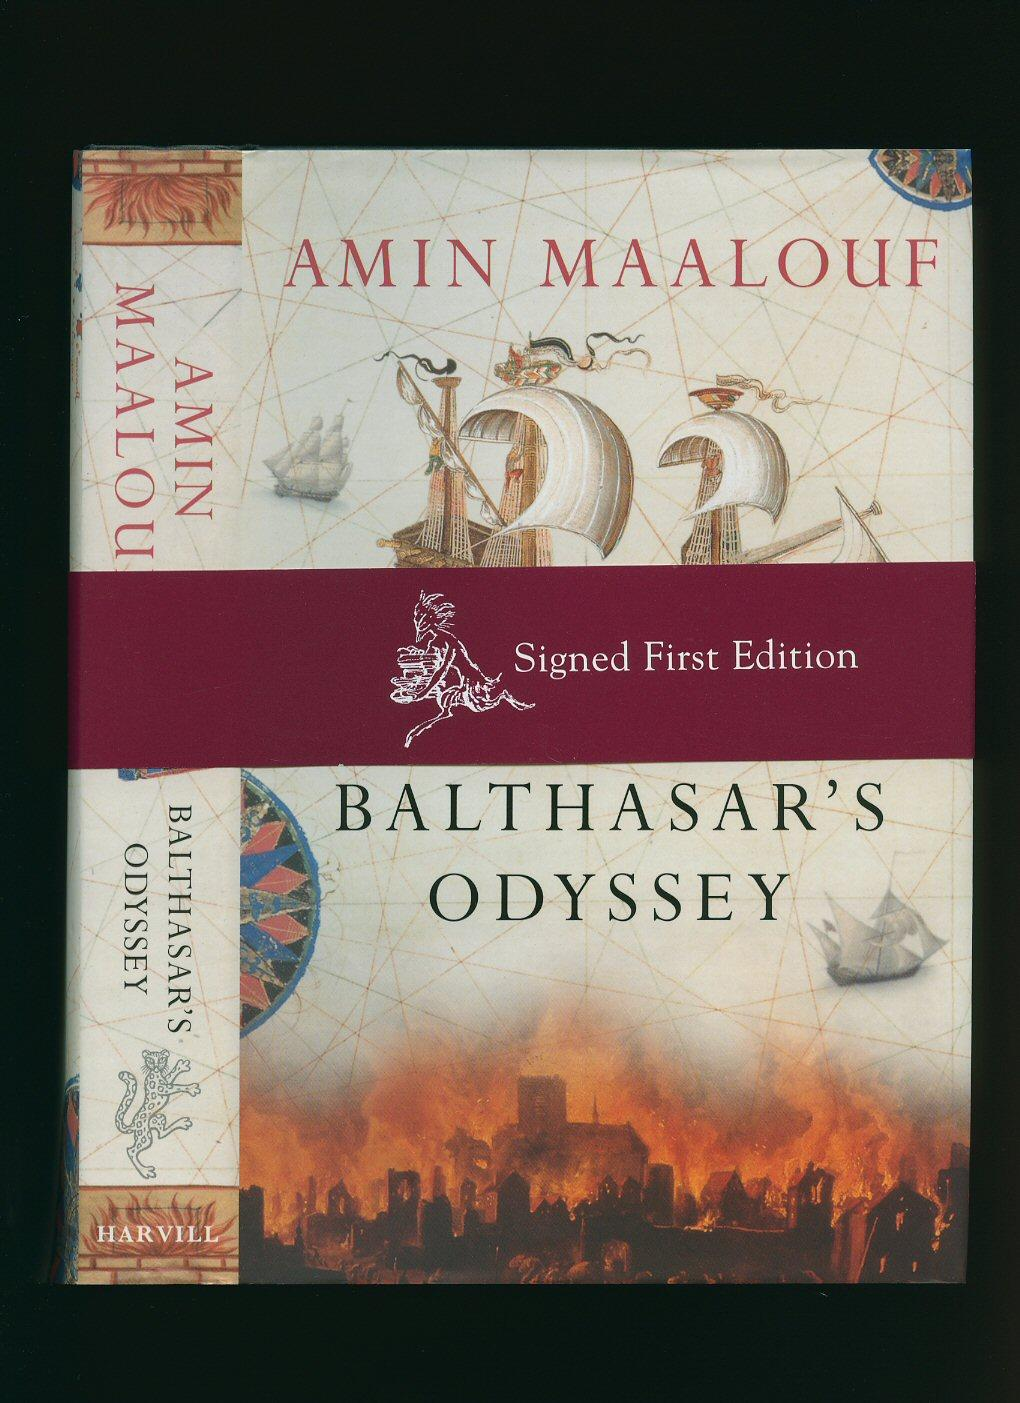 Balthasar's Odyssey [Signed] - Maalouf, Amin [Translated from the French by Barbara Bray]